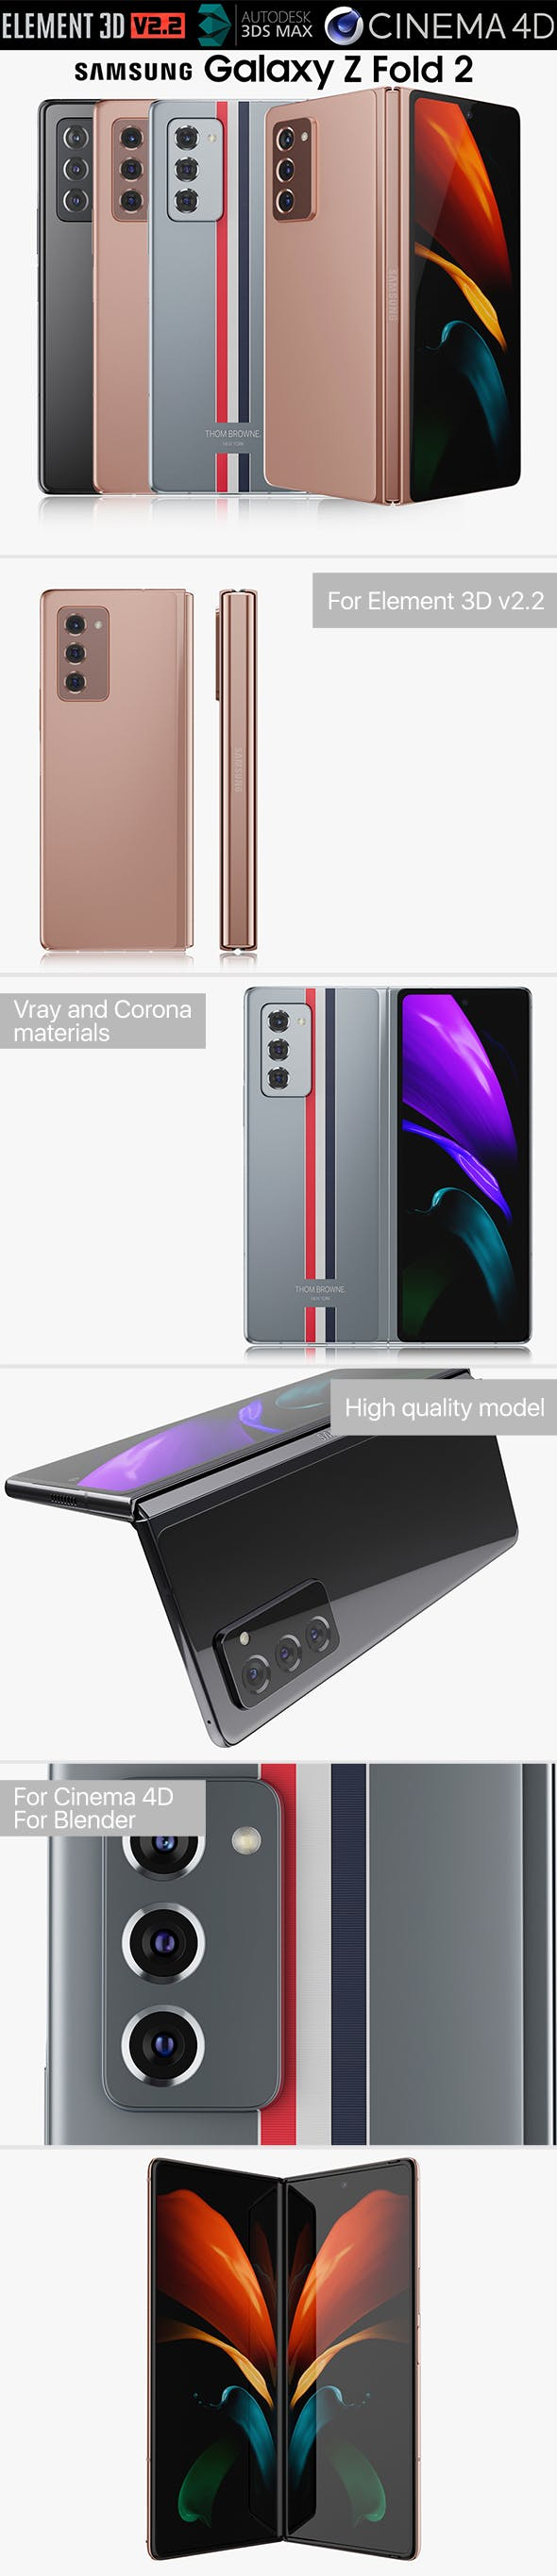 Samsung Galaxy Z Fold 2 all colors - 3DOcean Item for Sale